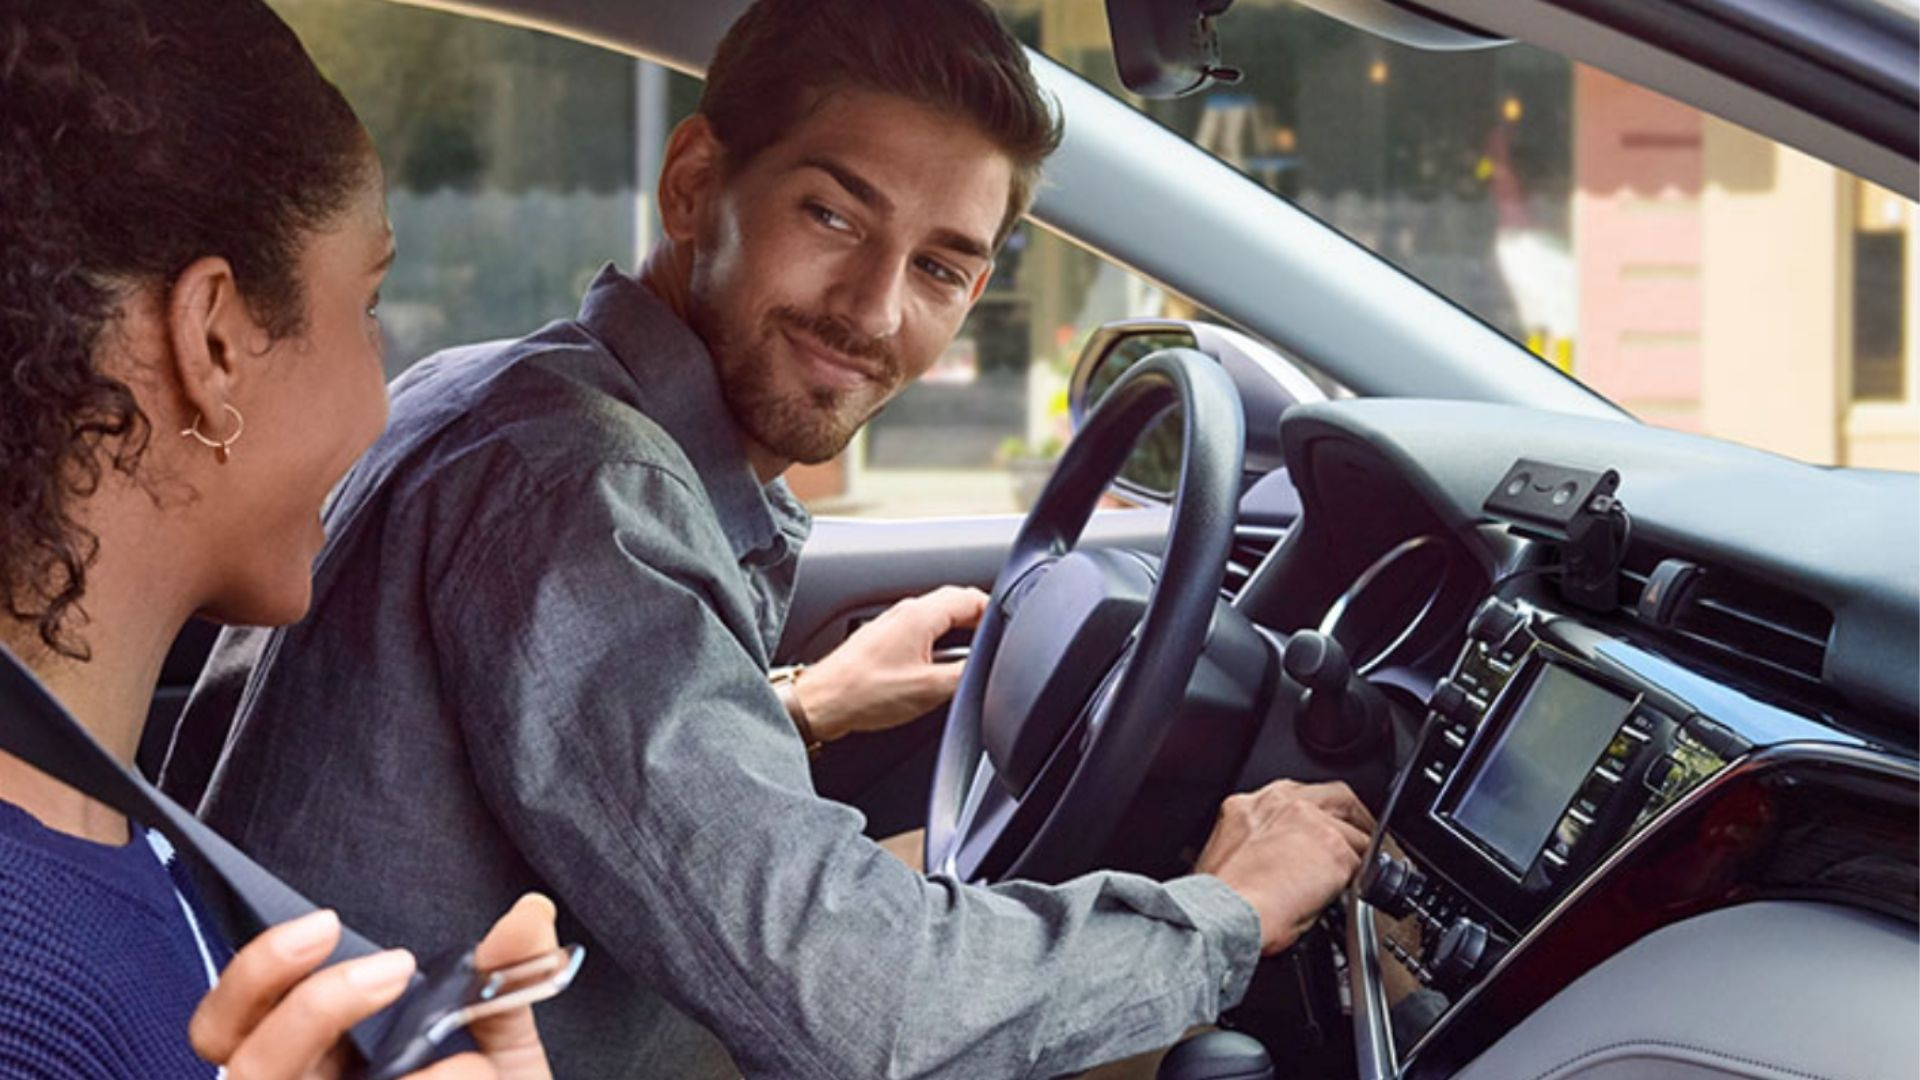 This $70 device makes it easy to stay connected in an older car — here's why shoppers love it